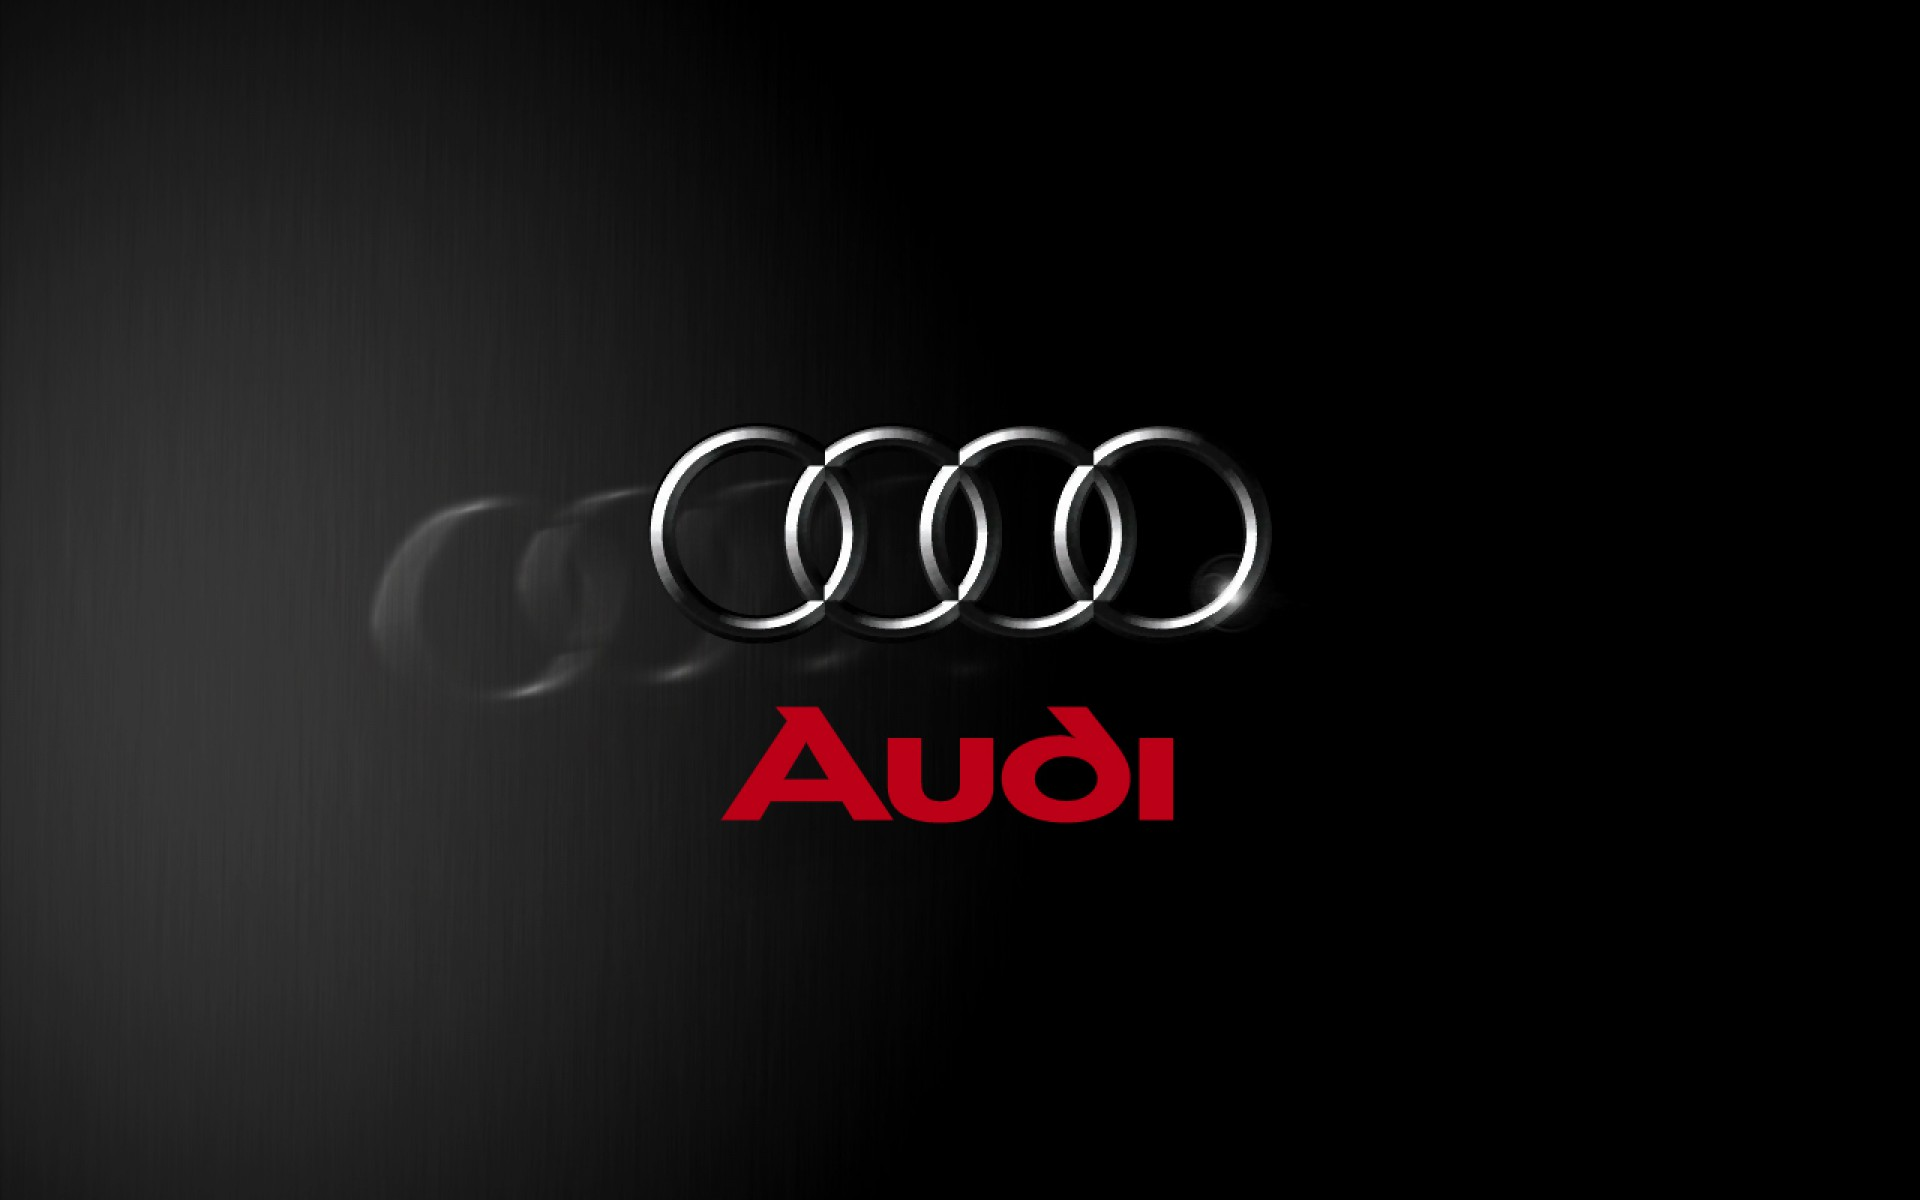 7 Hd Audi Logo Wallpapers Hdwallsource Com